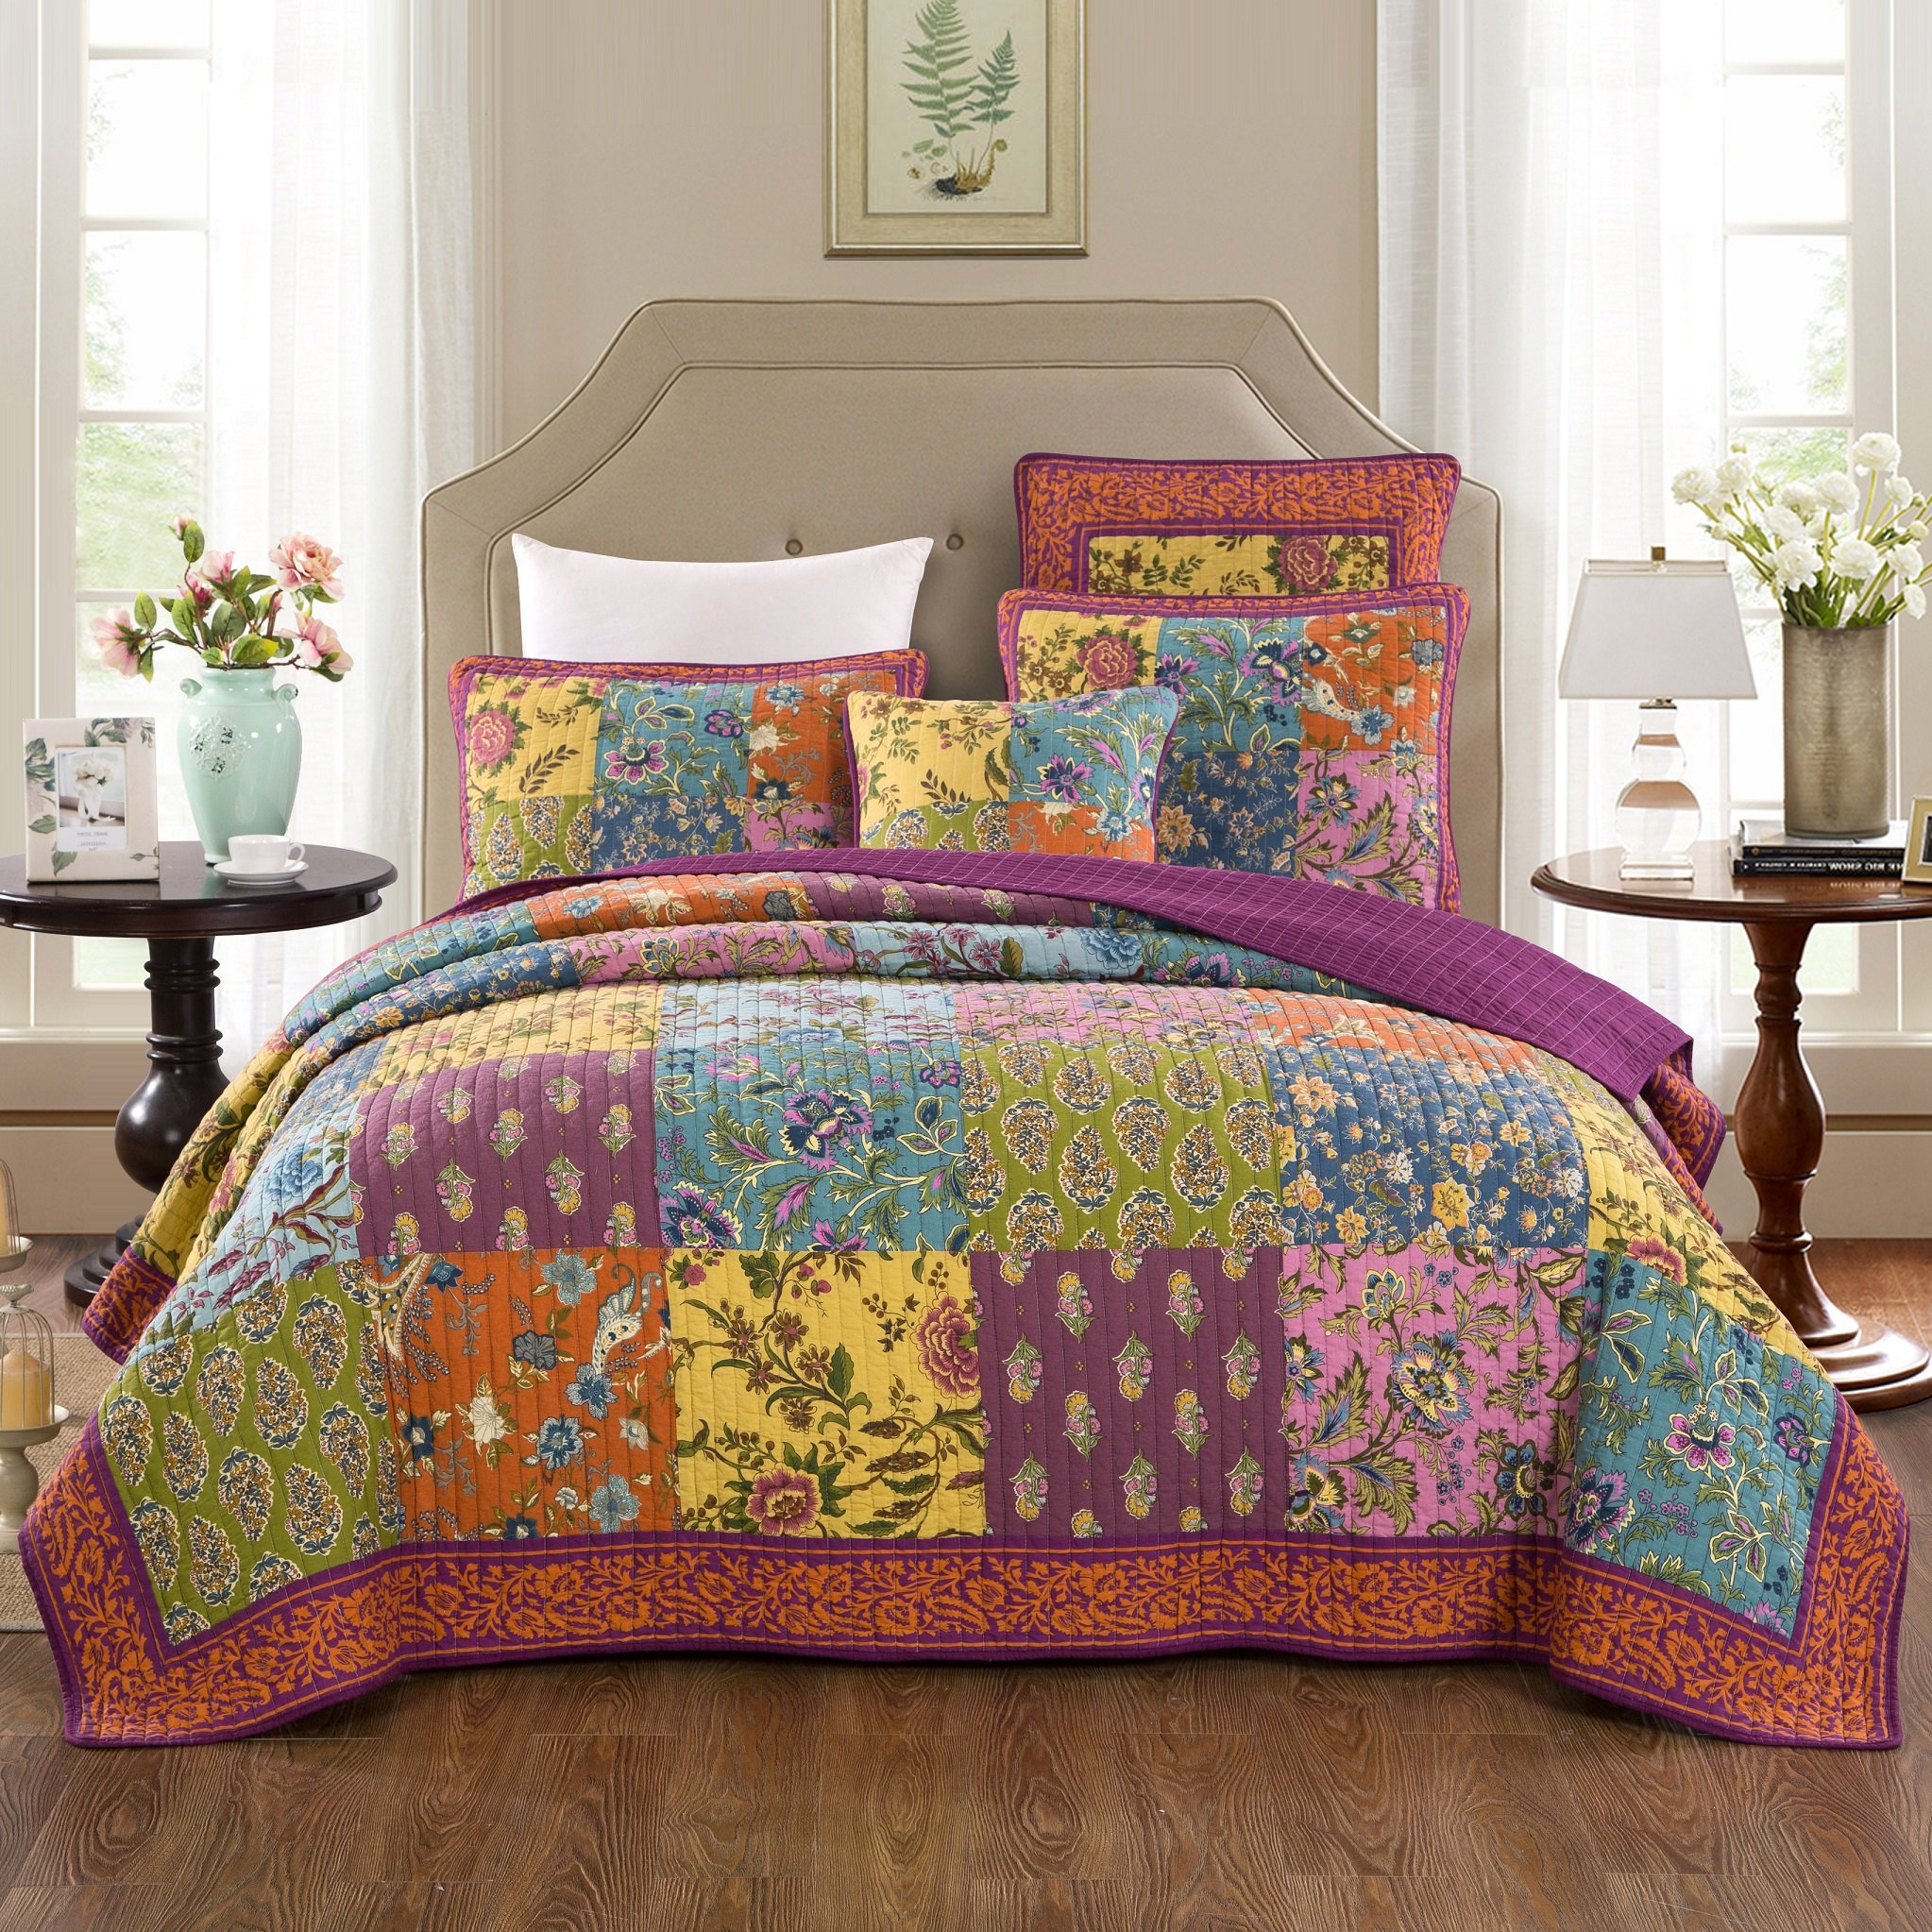 Tache Home Fashion Bohemian Carnival Garden Patchwork Quilted Coverlet Bedspread Set - Bright Vibrant Multi Colorful Orange Purple Floral Print - Full - 3-Pieces